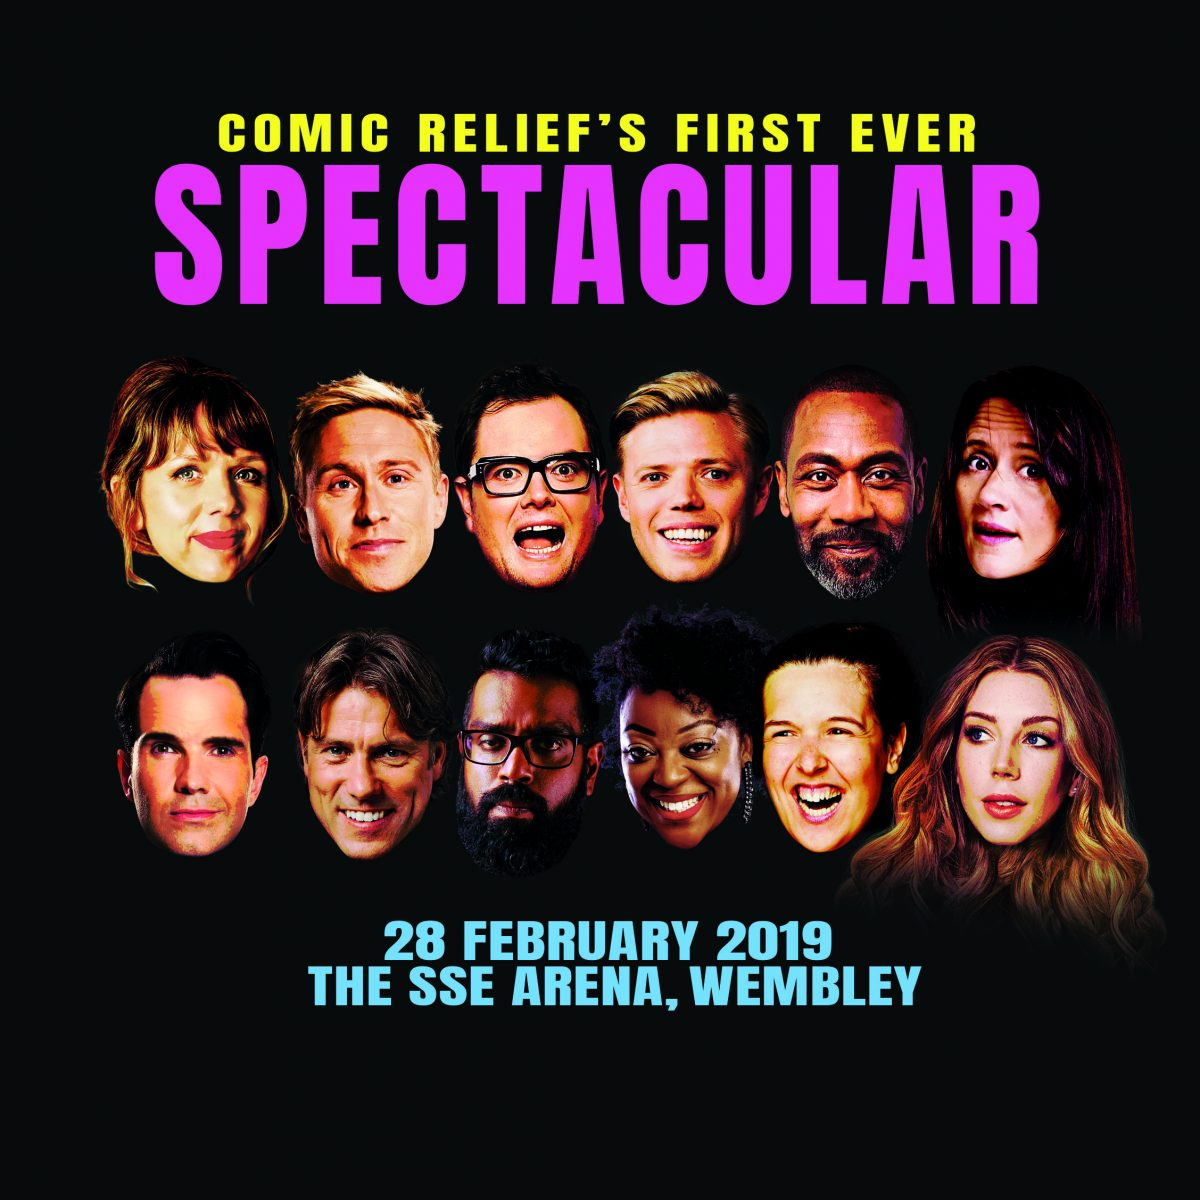 Comic Relief is to Present One-off Comedy Show 'Spectacular'